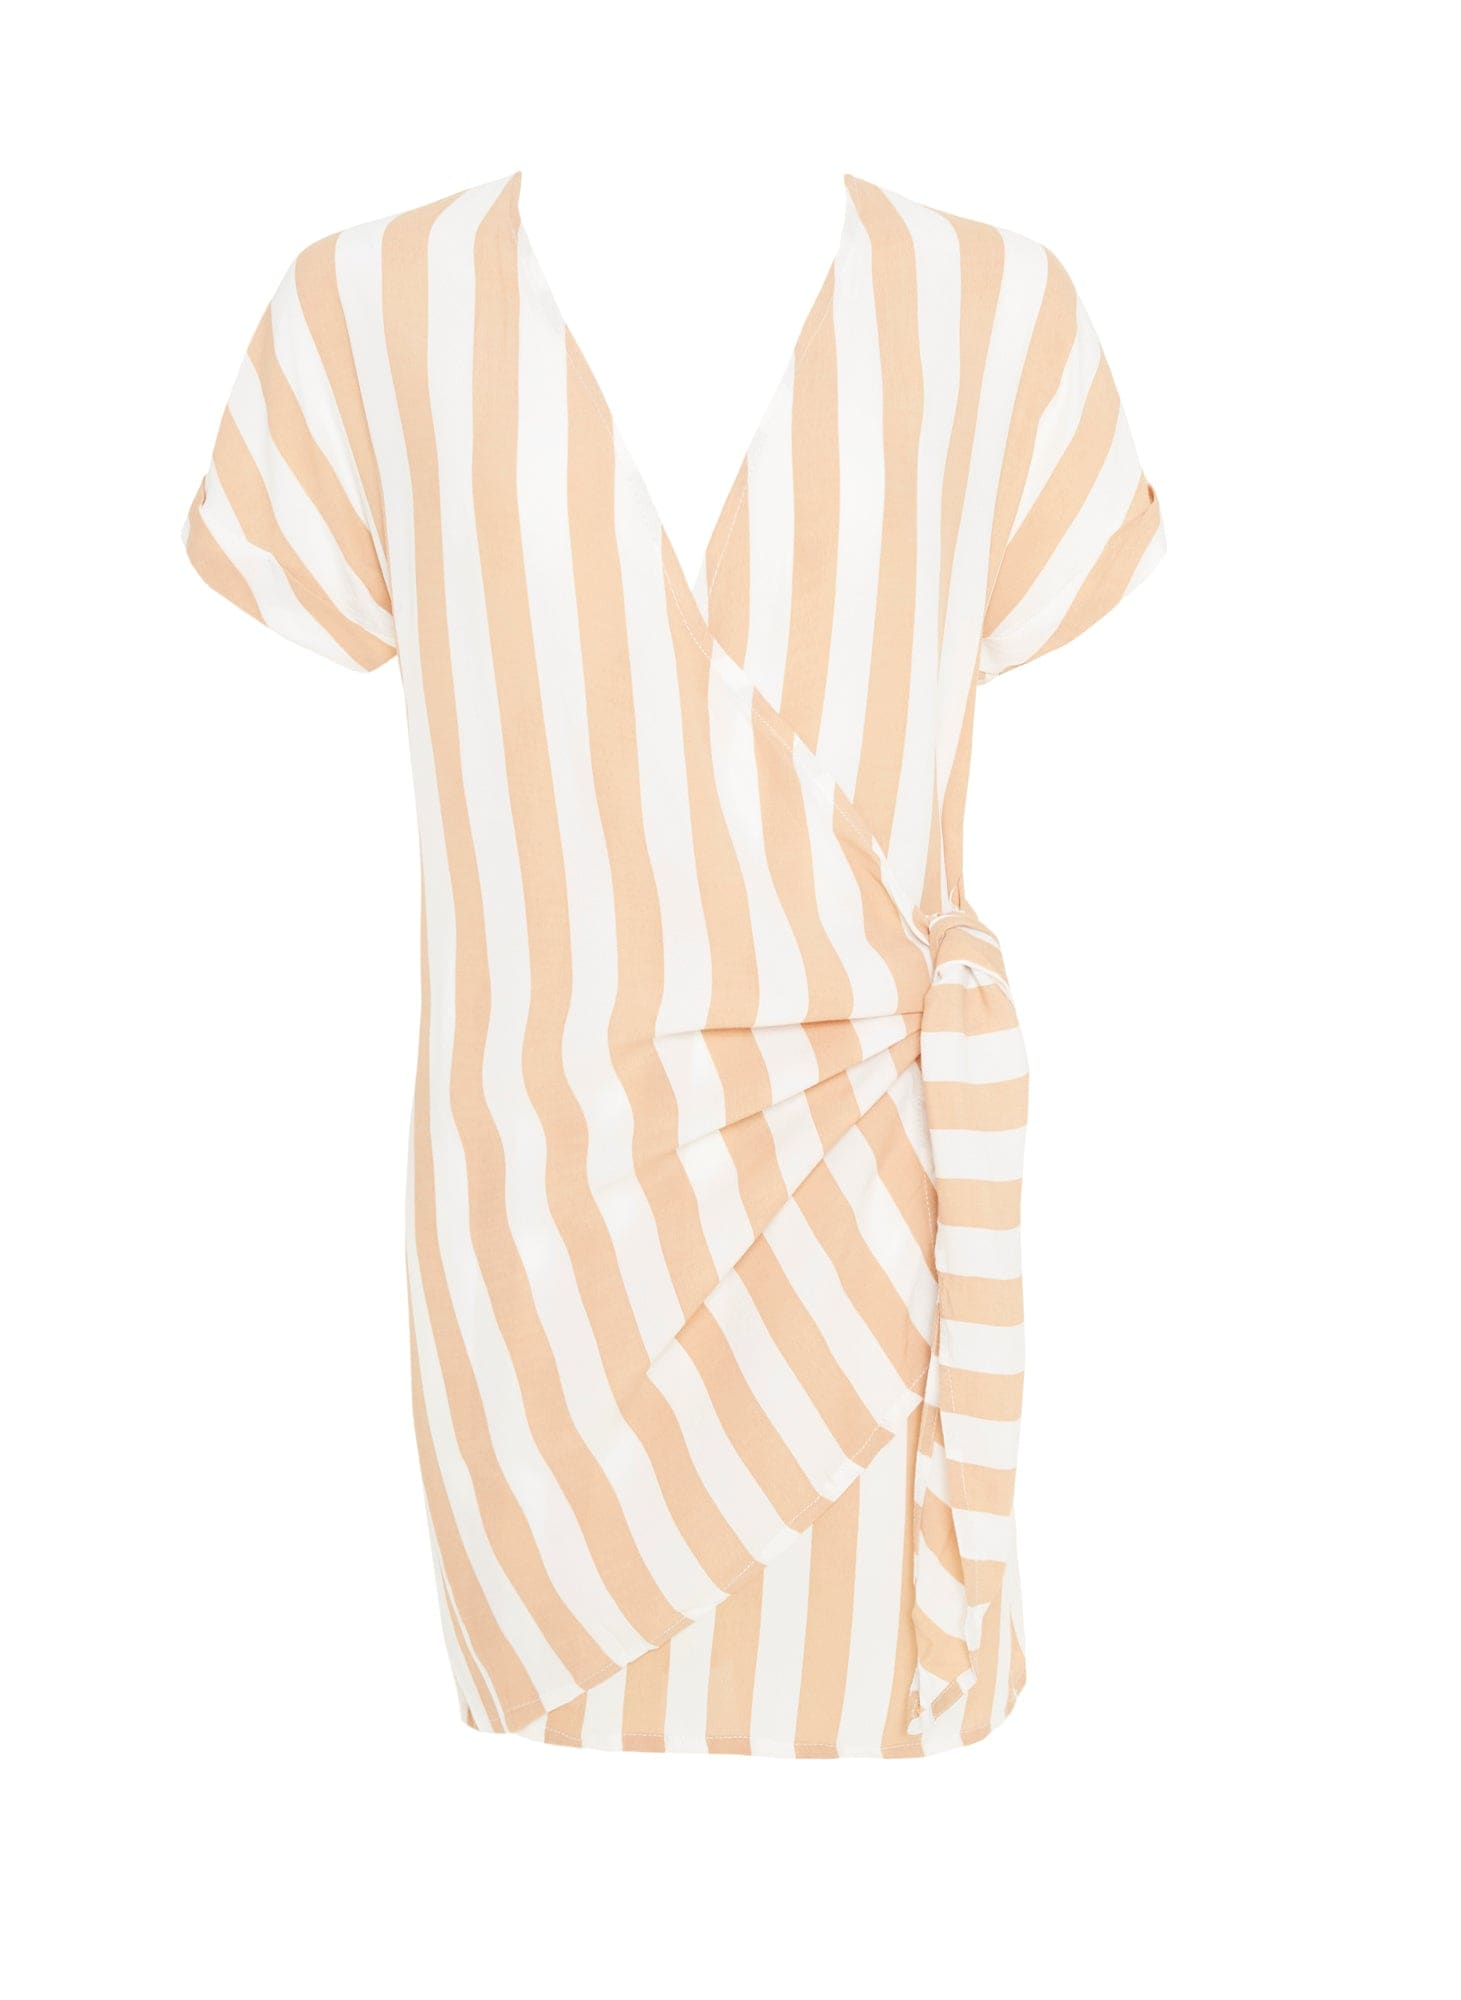 MEMPHIS STRIPE PRINT - LOTTA DRESS - FINAL SALE